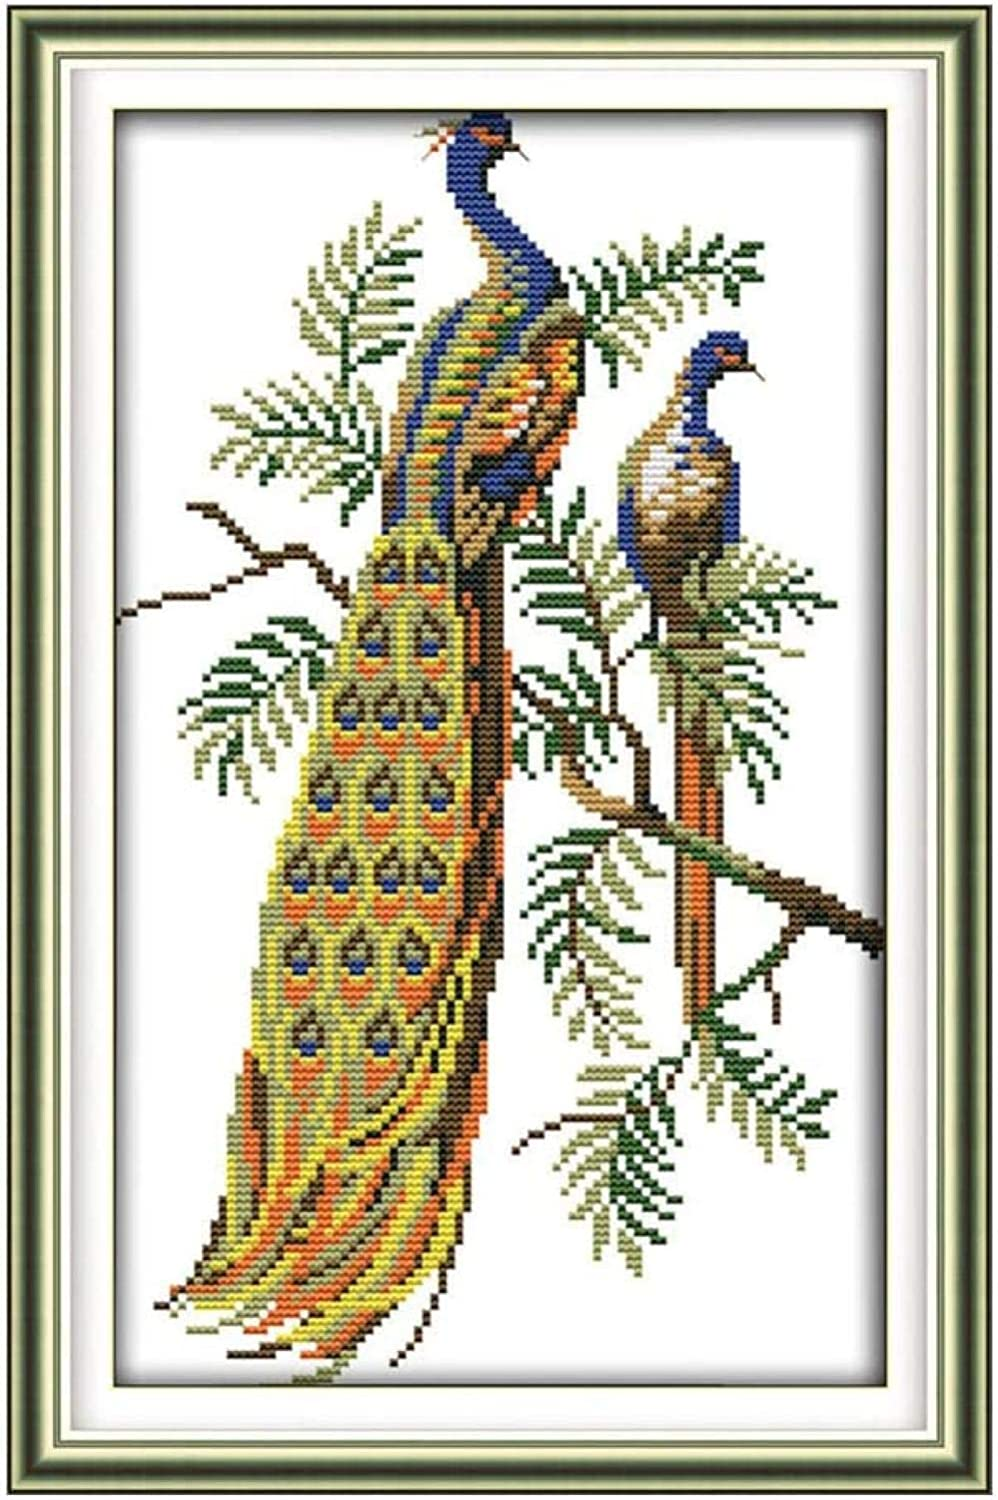 Max 75% OFF ZSZXMZ Max 53% OFF Stamped Cross Stitch Kit Embroidery Peaco Kits Crafts DIY